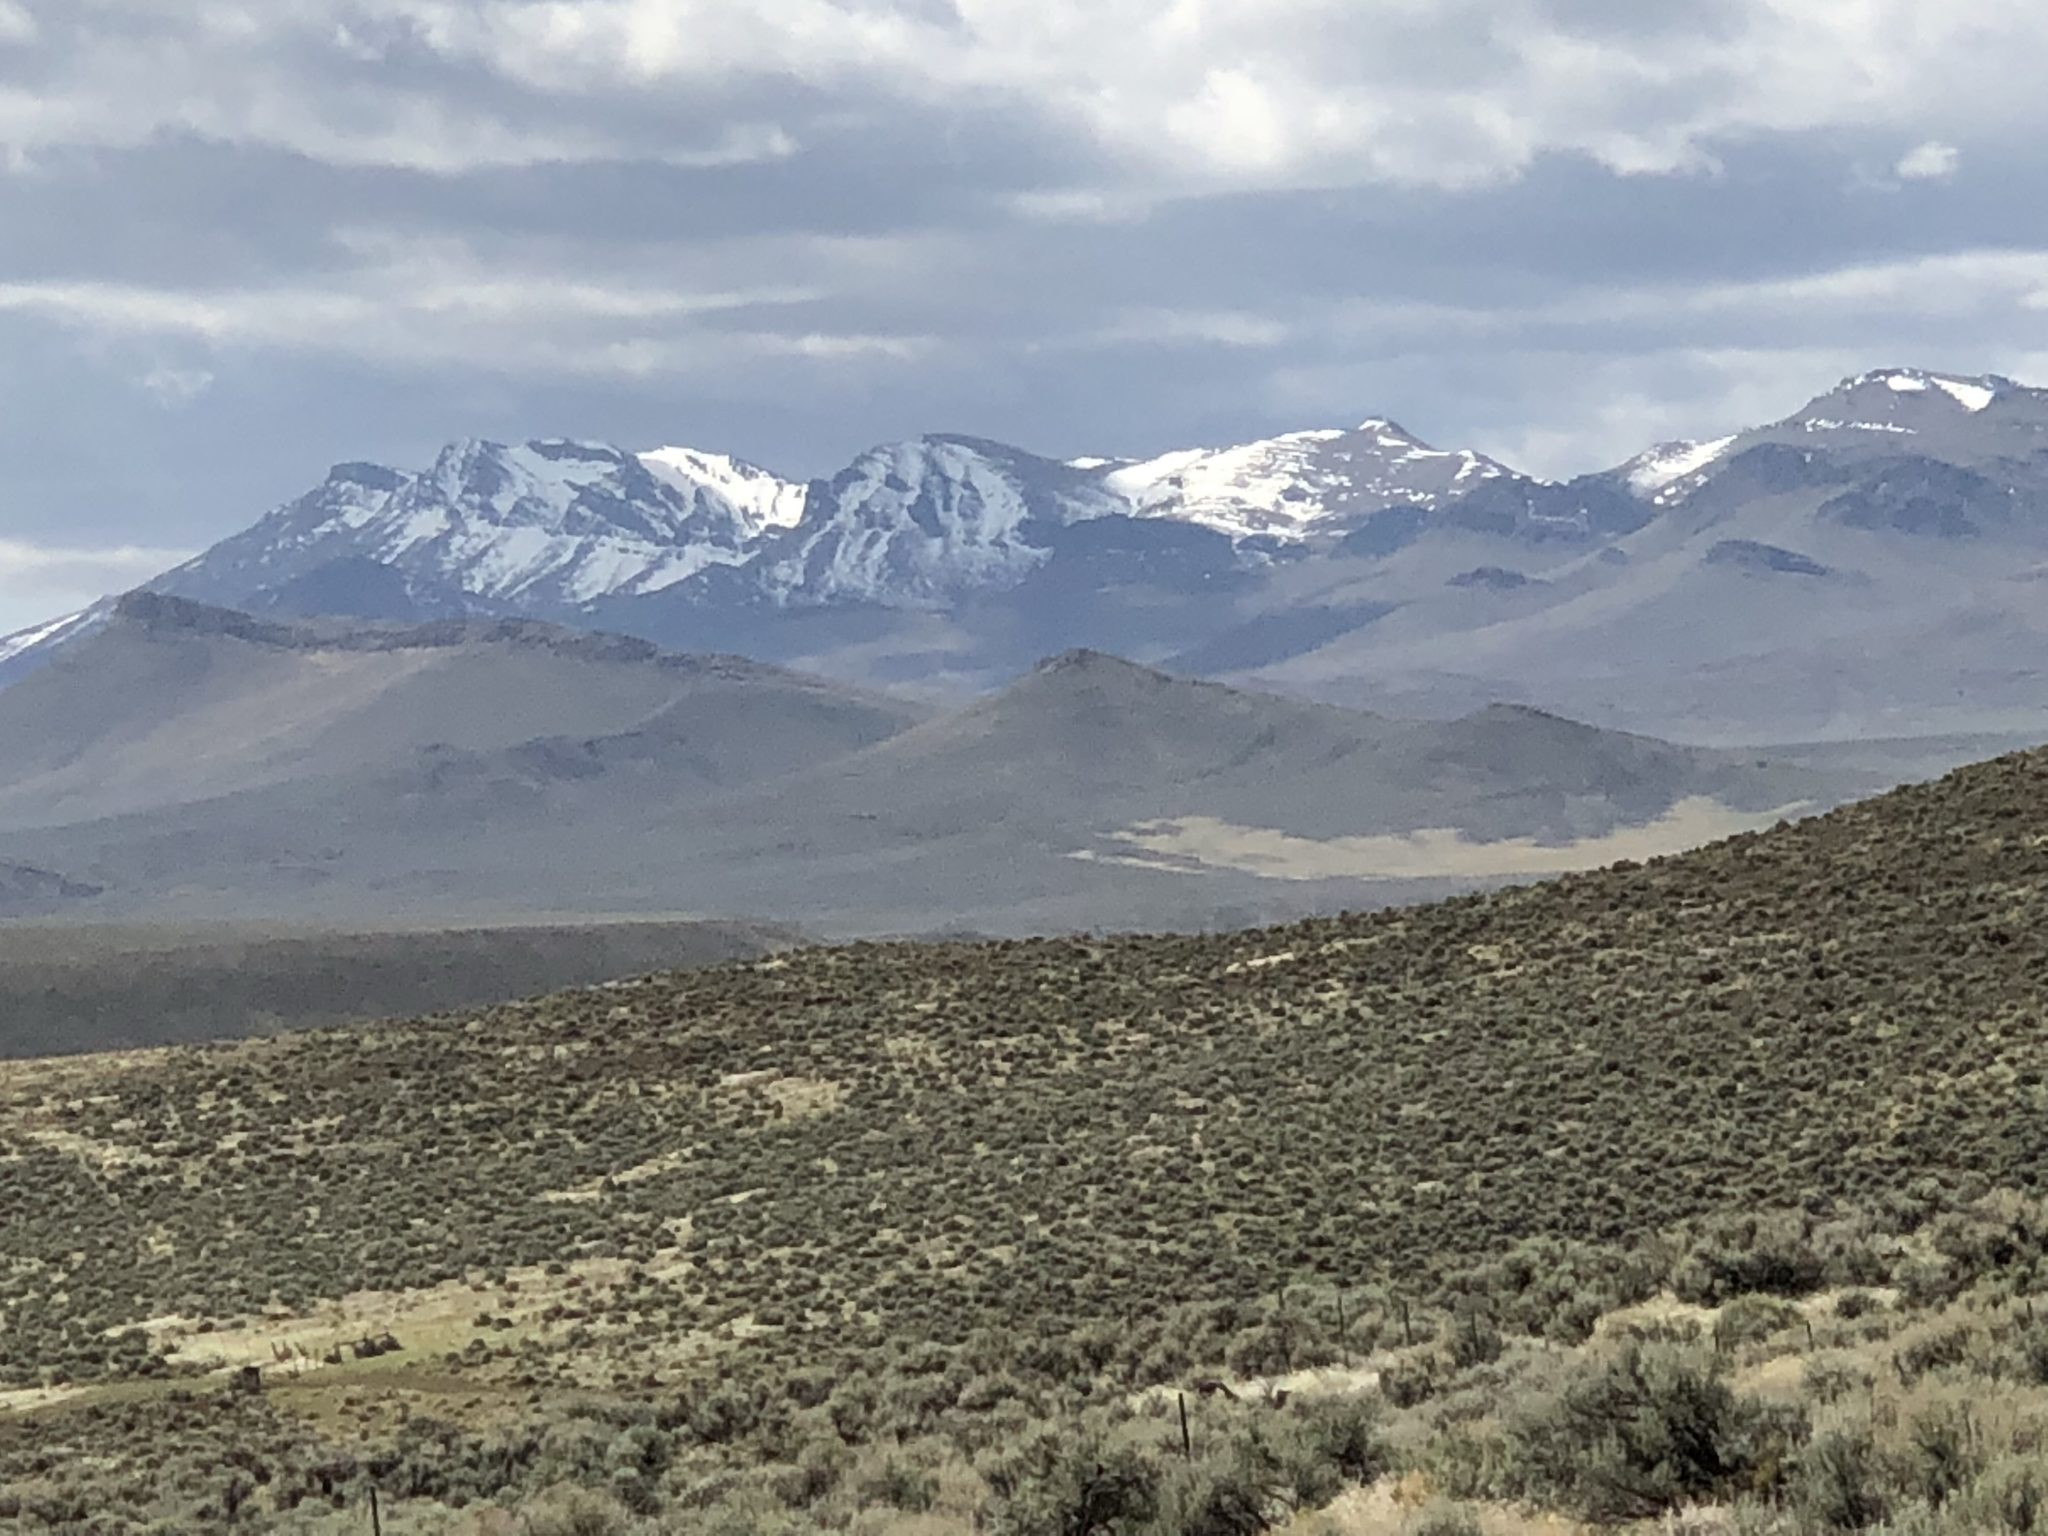 April 2018 Cross-Country Road Trip: Oregon's High Desert Discovery Scenic Byway